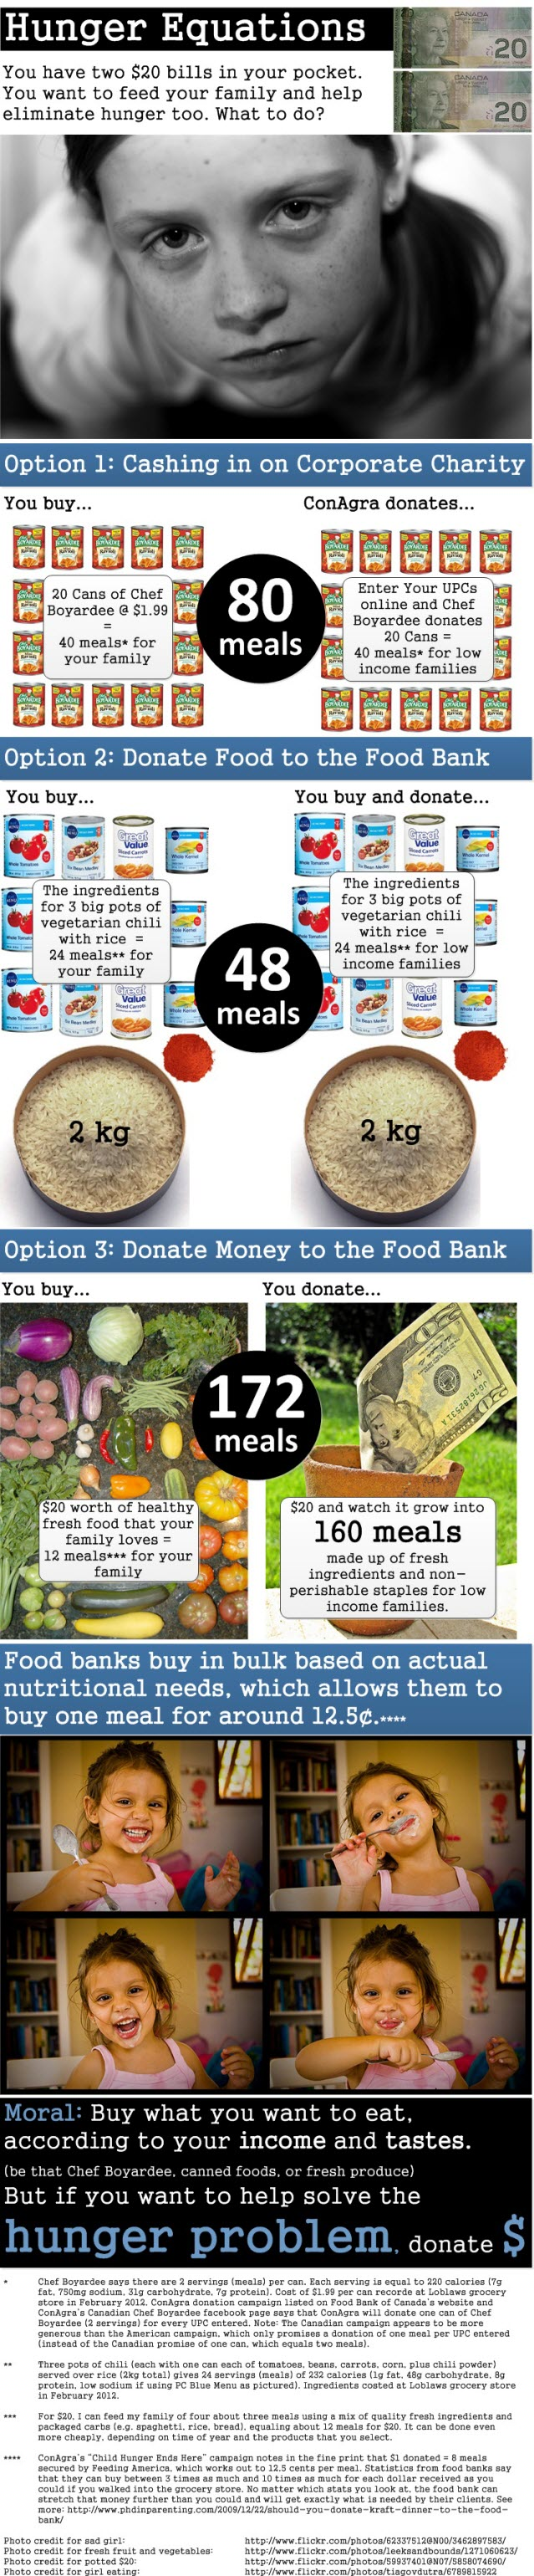 Hunger Equations — What Is The Best Way to Help Fight Hunger?